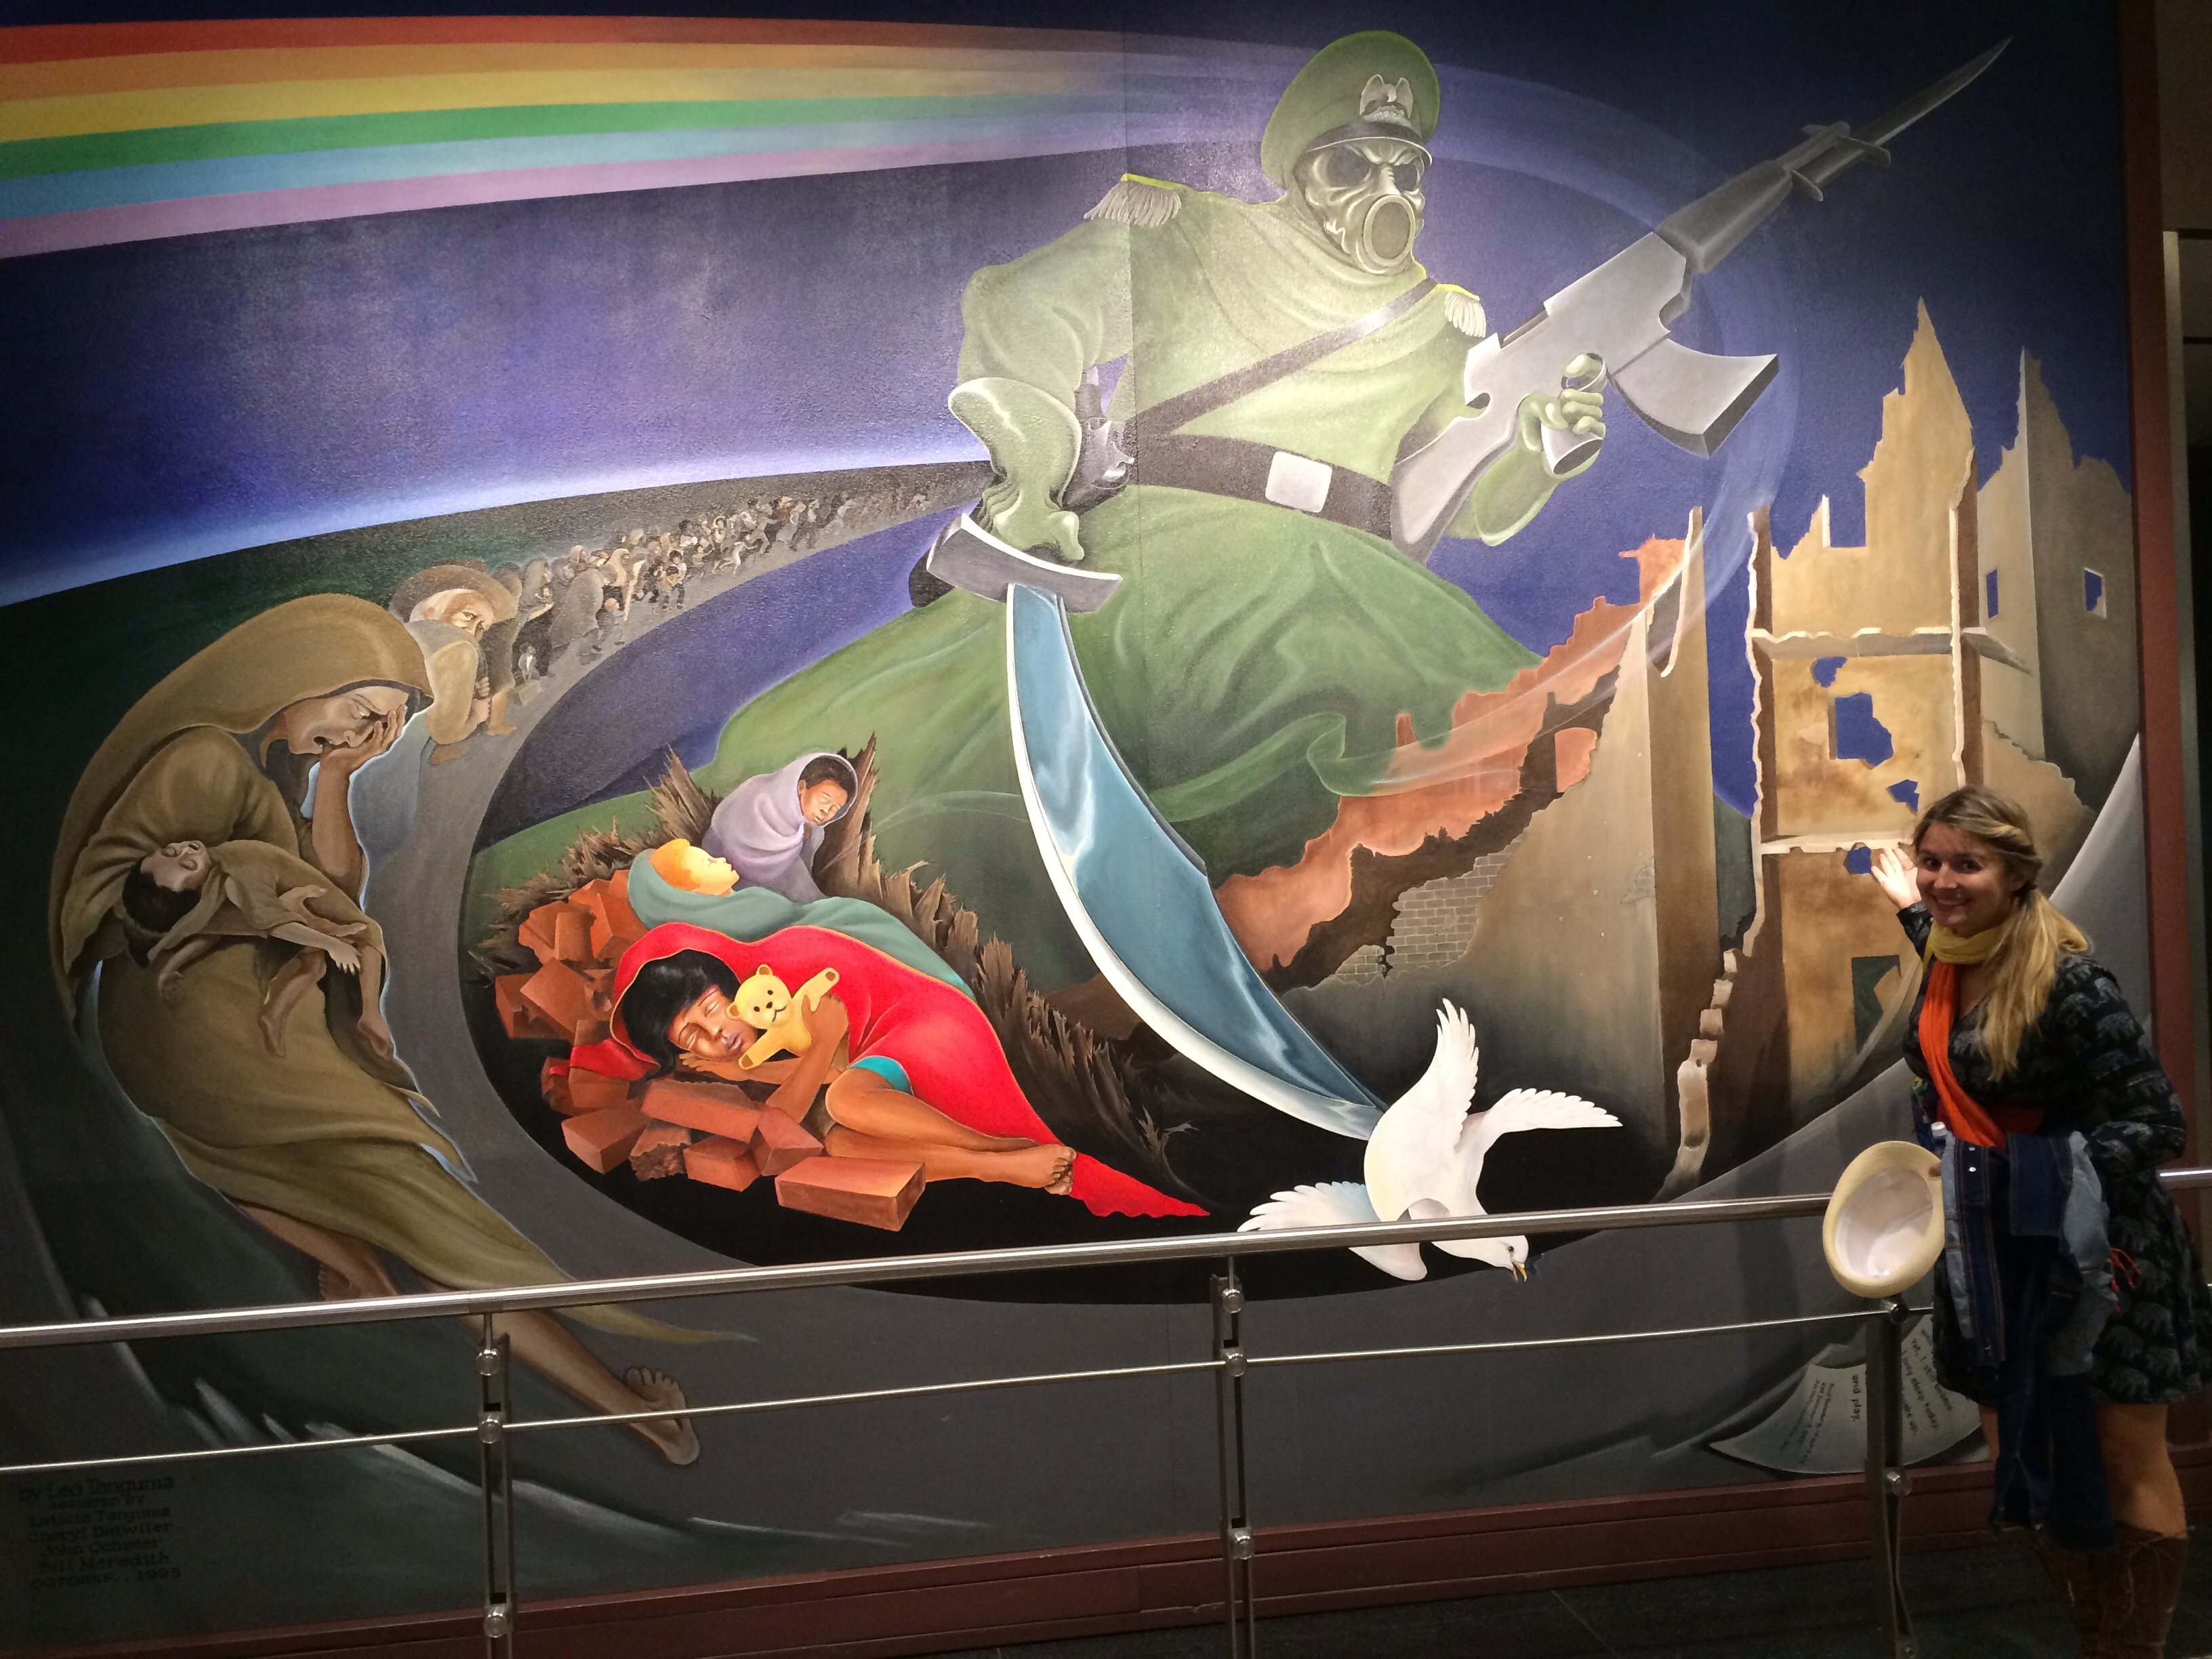 Eerie murals at the denver airport have conspiracy for Denver mural conspiracy